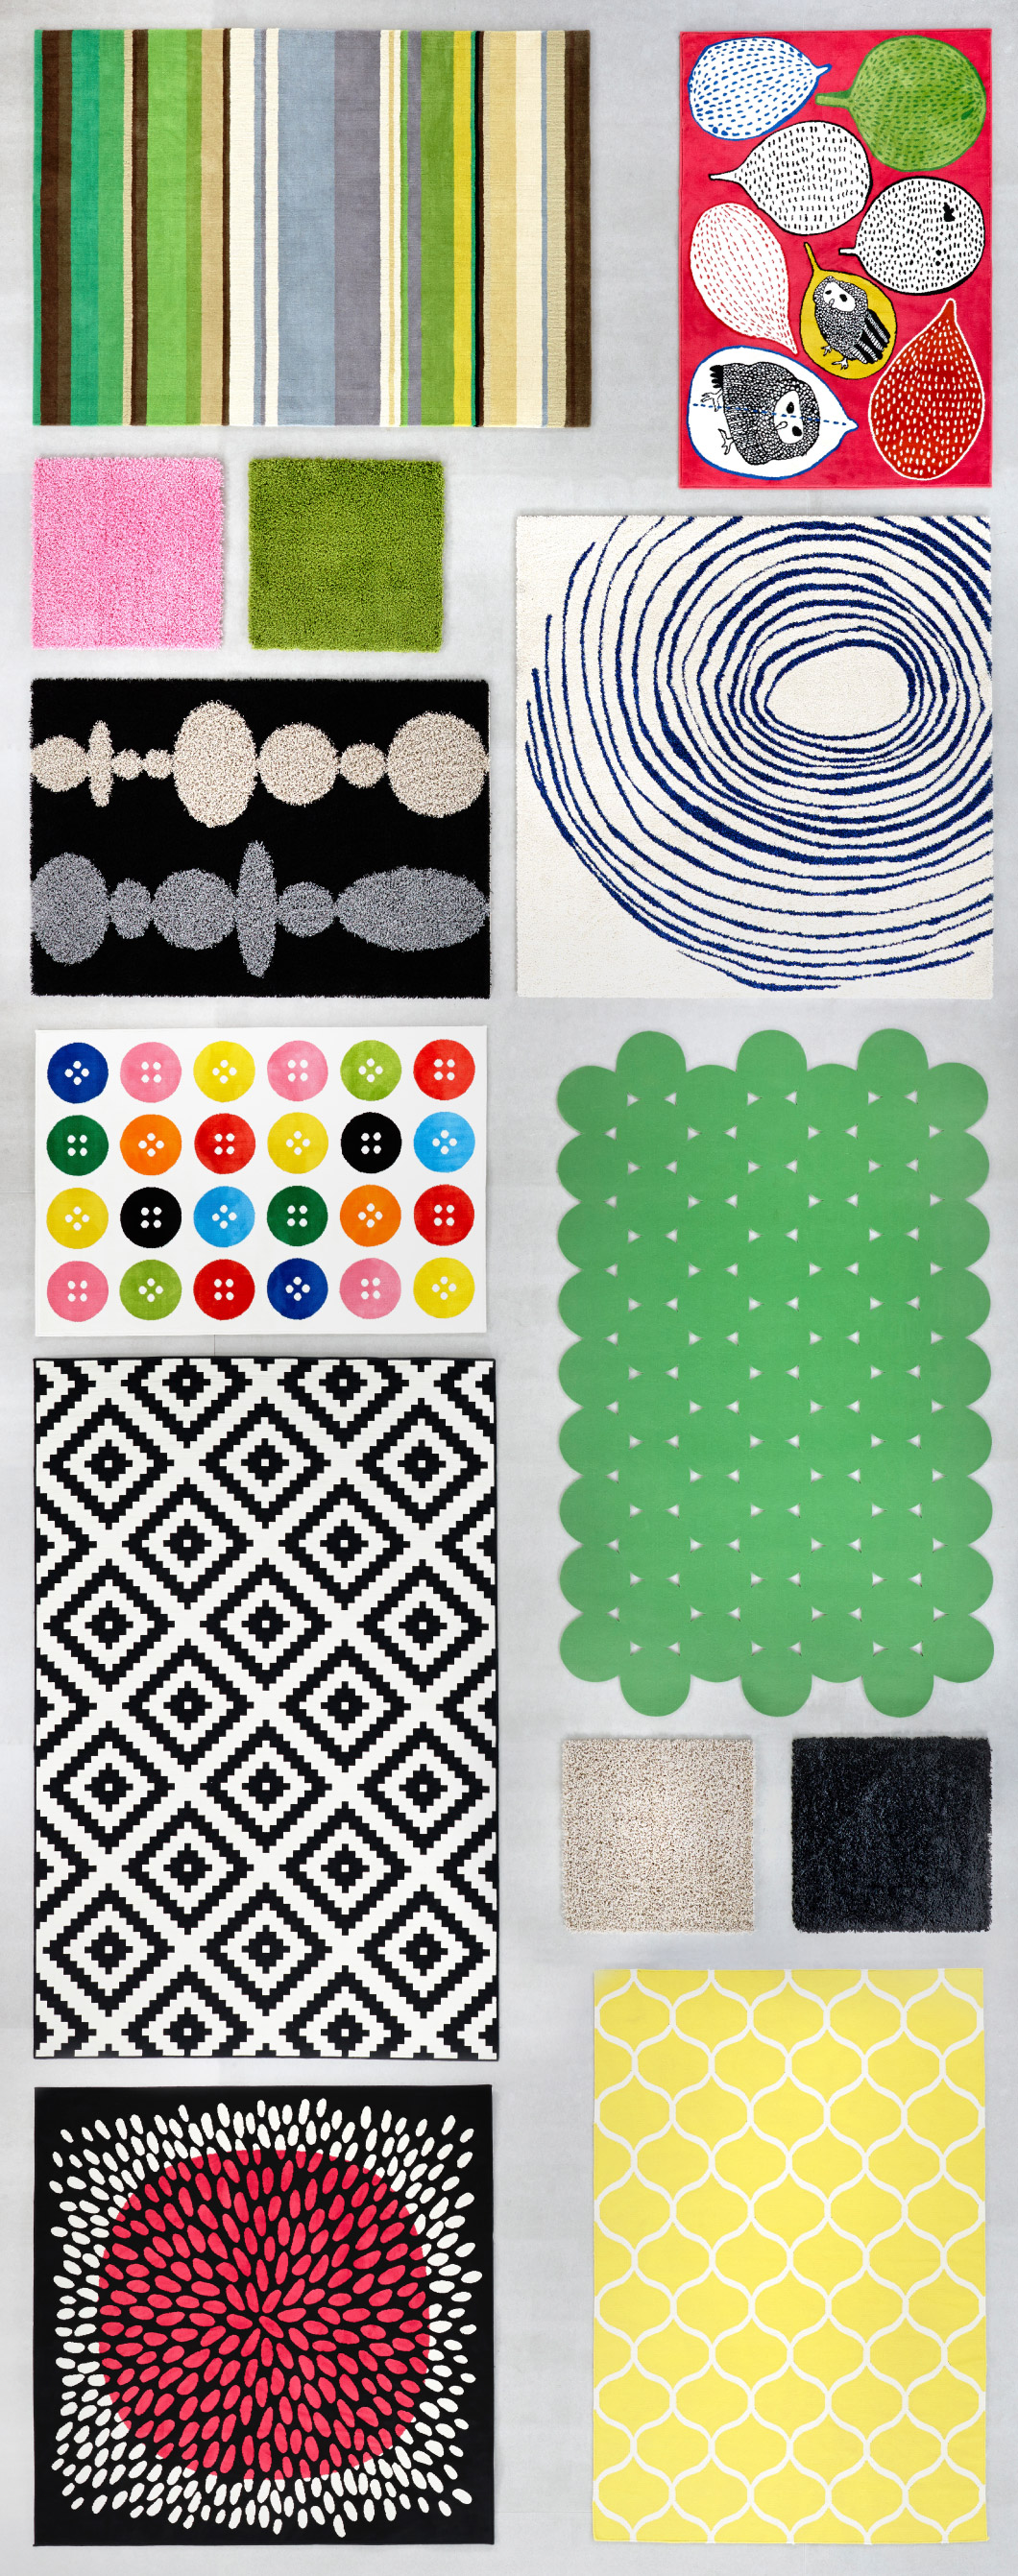 Display of rugs in different sizes, colours and shapes